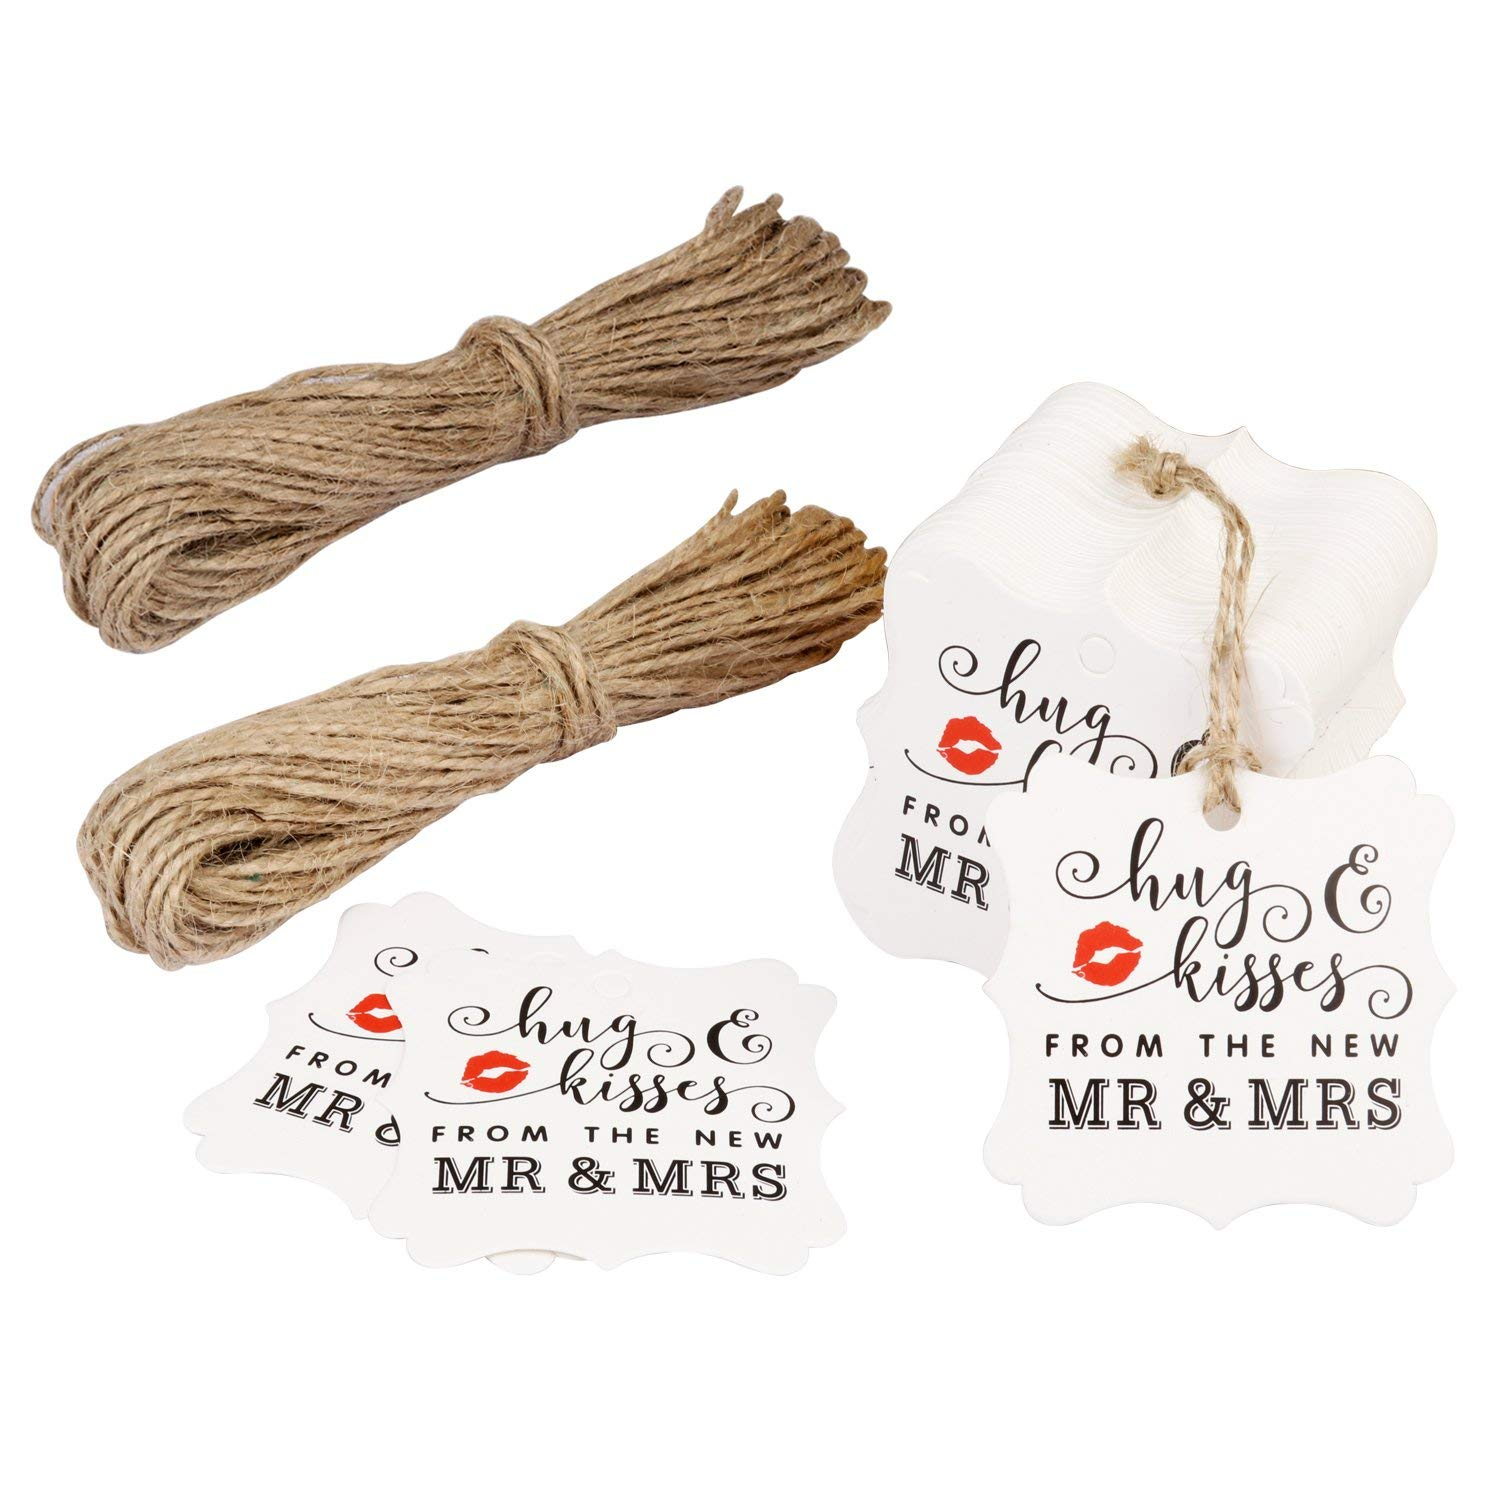 FASOTY Personalized Wedding Tags 100 PCS Paper Gift Tags Square Tags with 2 Bundles of 10 m Natural Jute Twine Rope Perfect for Bridal Wedding Anniversary (White)